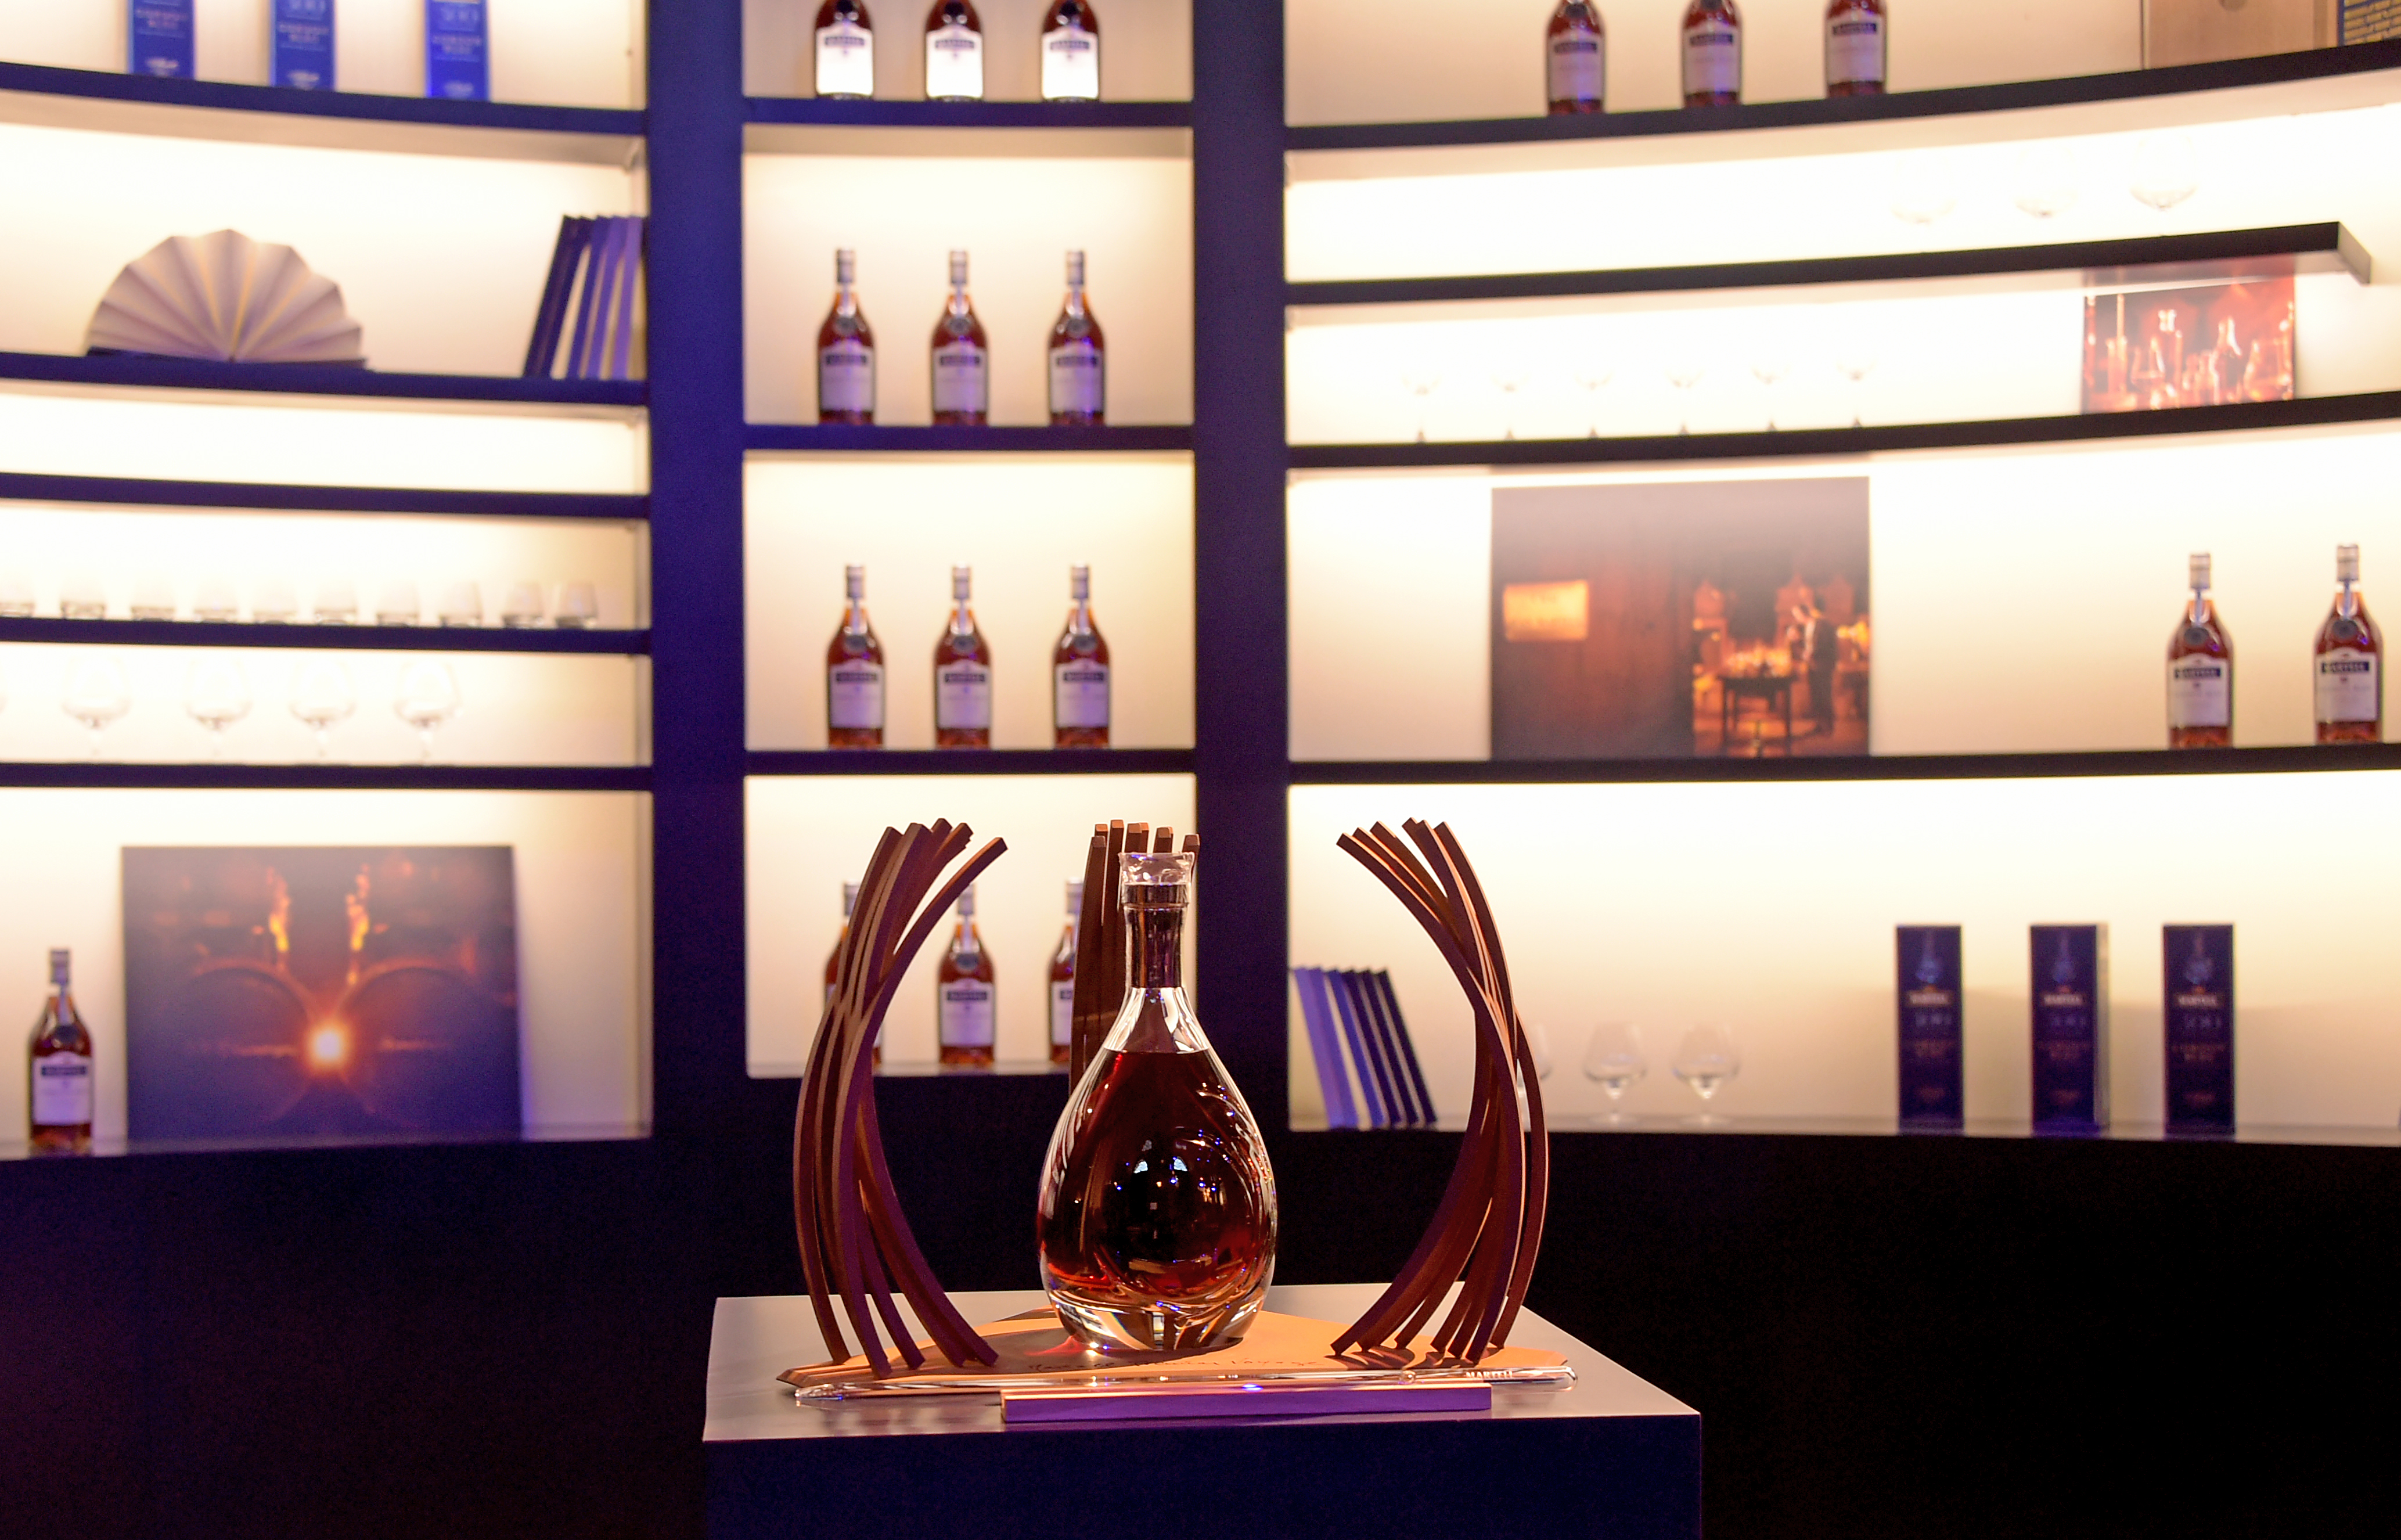 300th ANNIVERSARY FOR GLOBAL COGNAC HOUSE